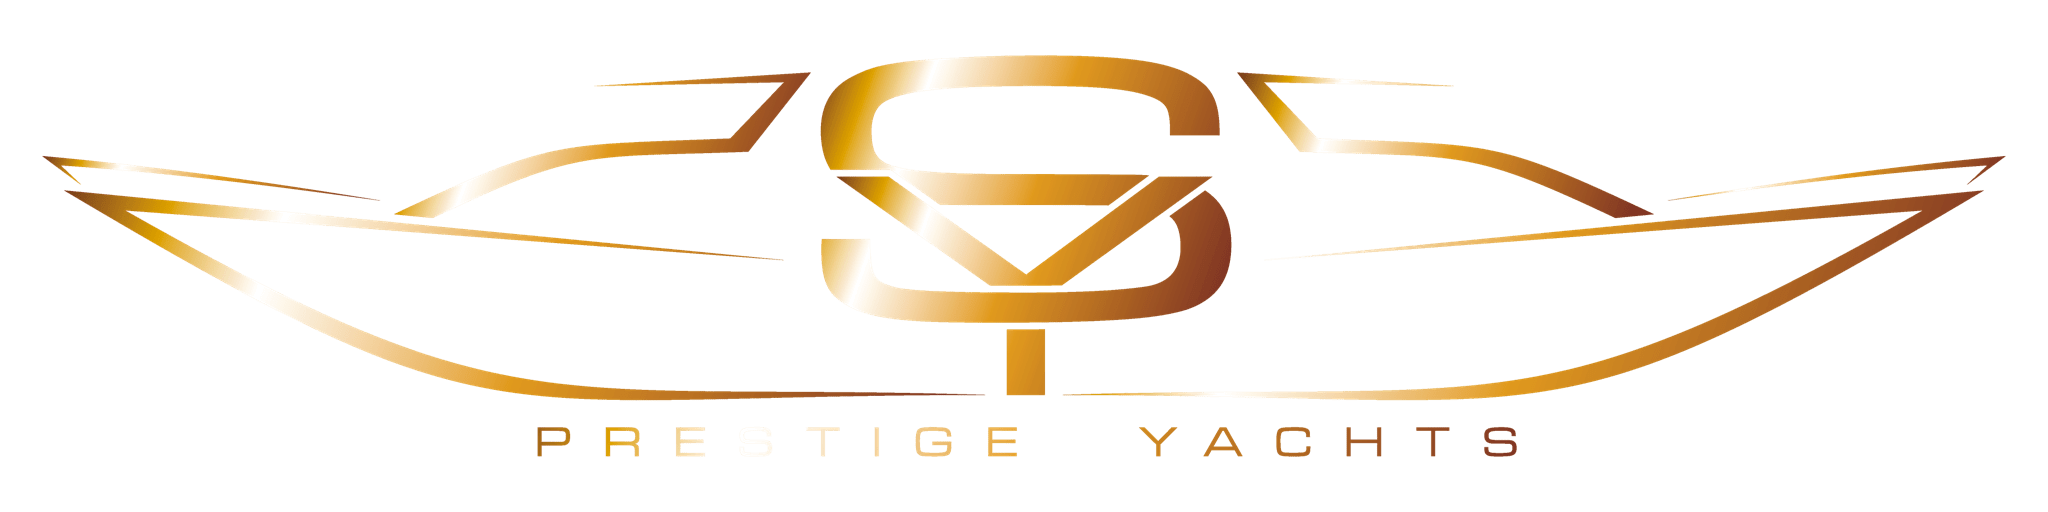 SY Prestige Yachts Cannes - Yacht Sales & Rentals -